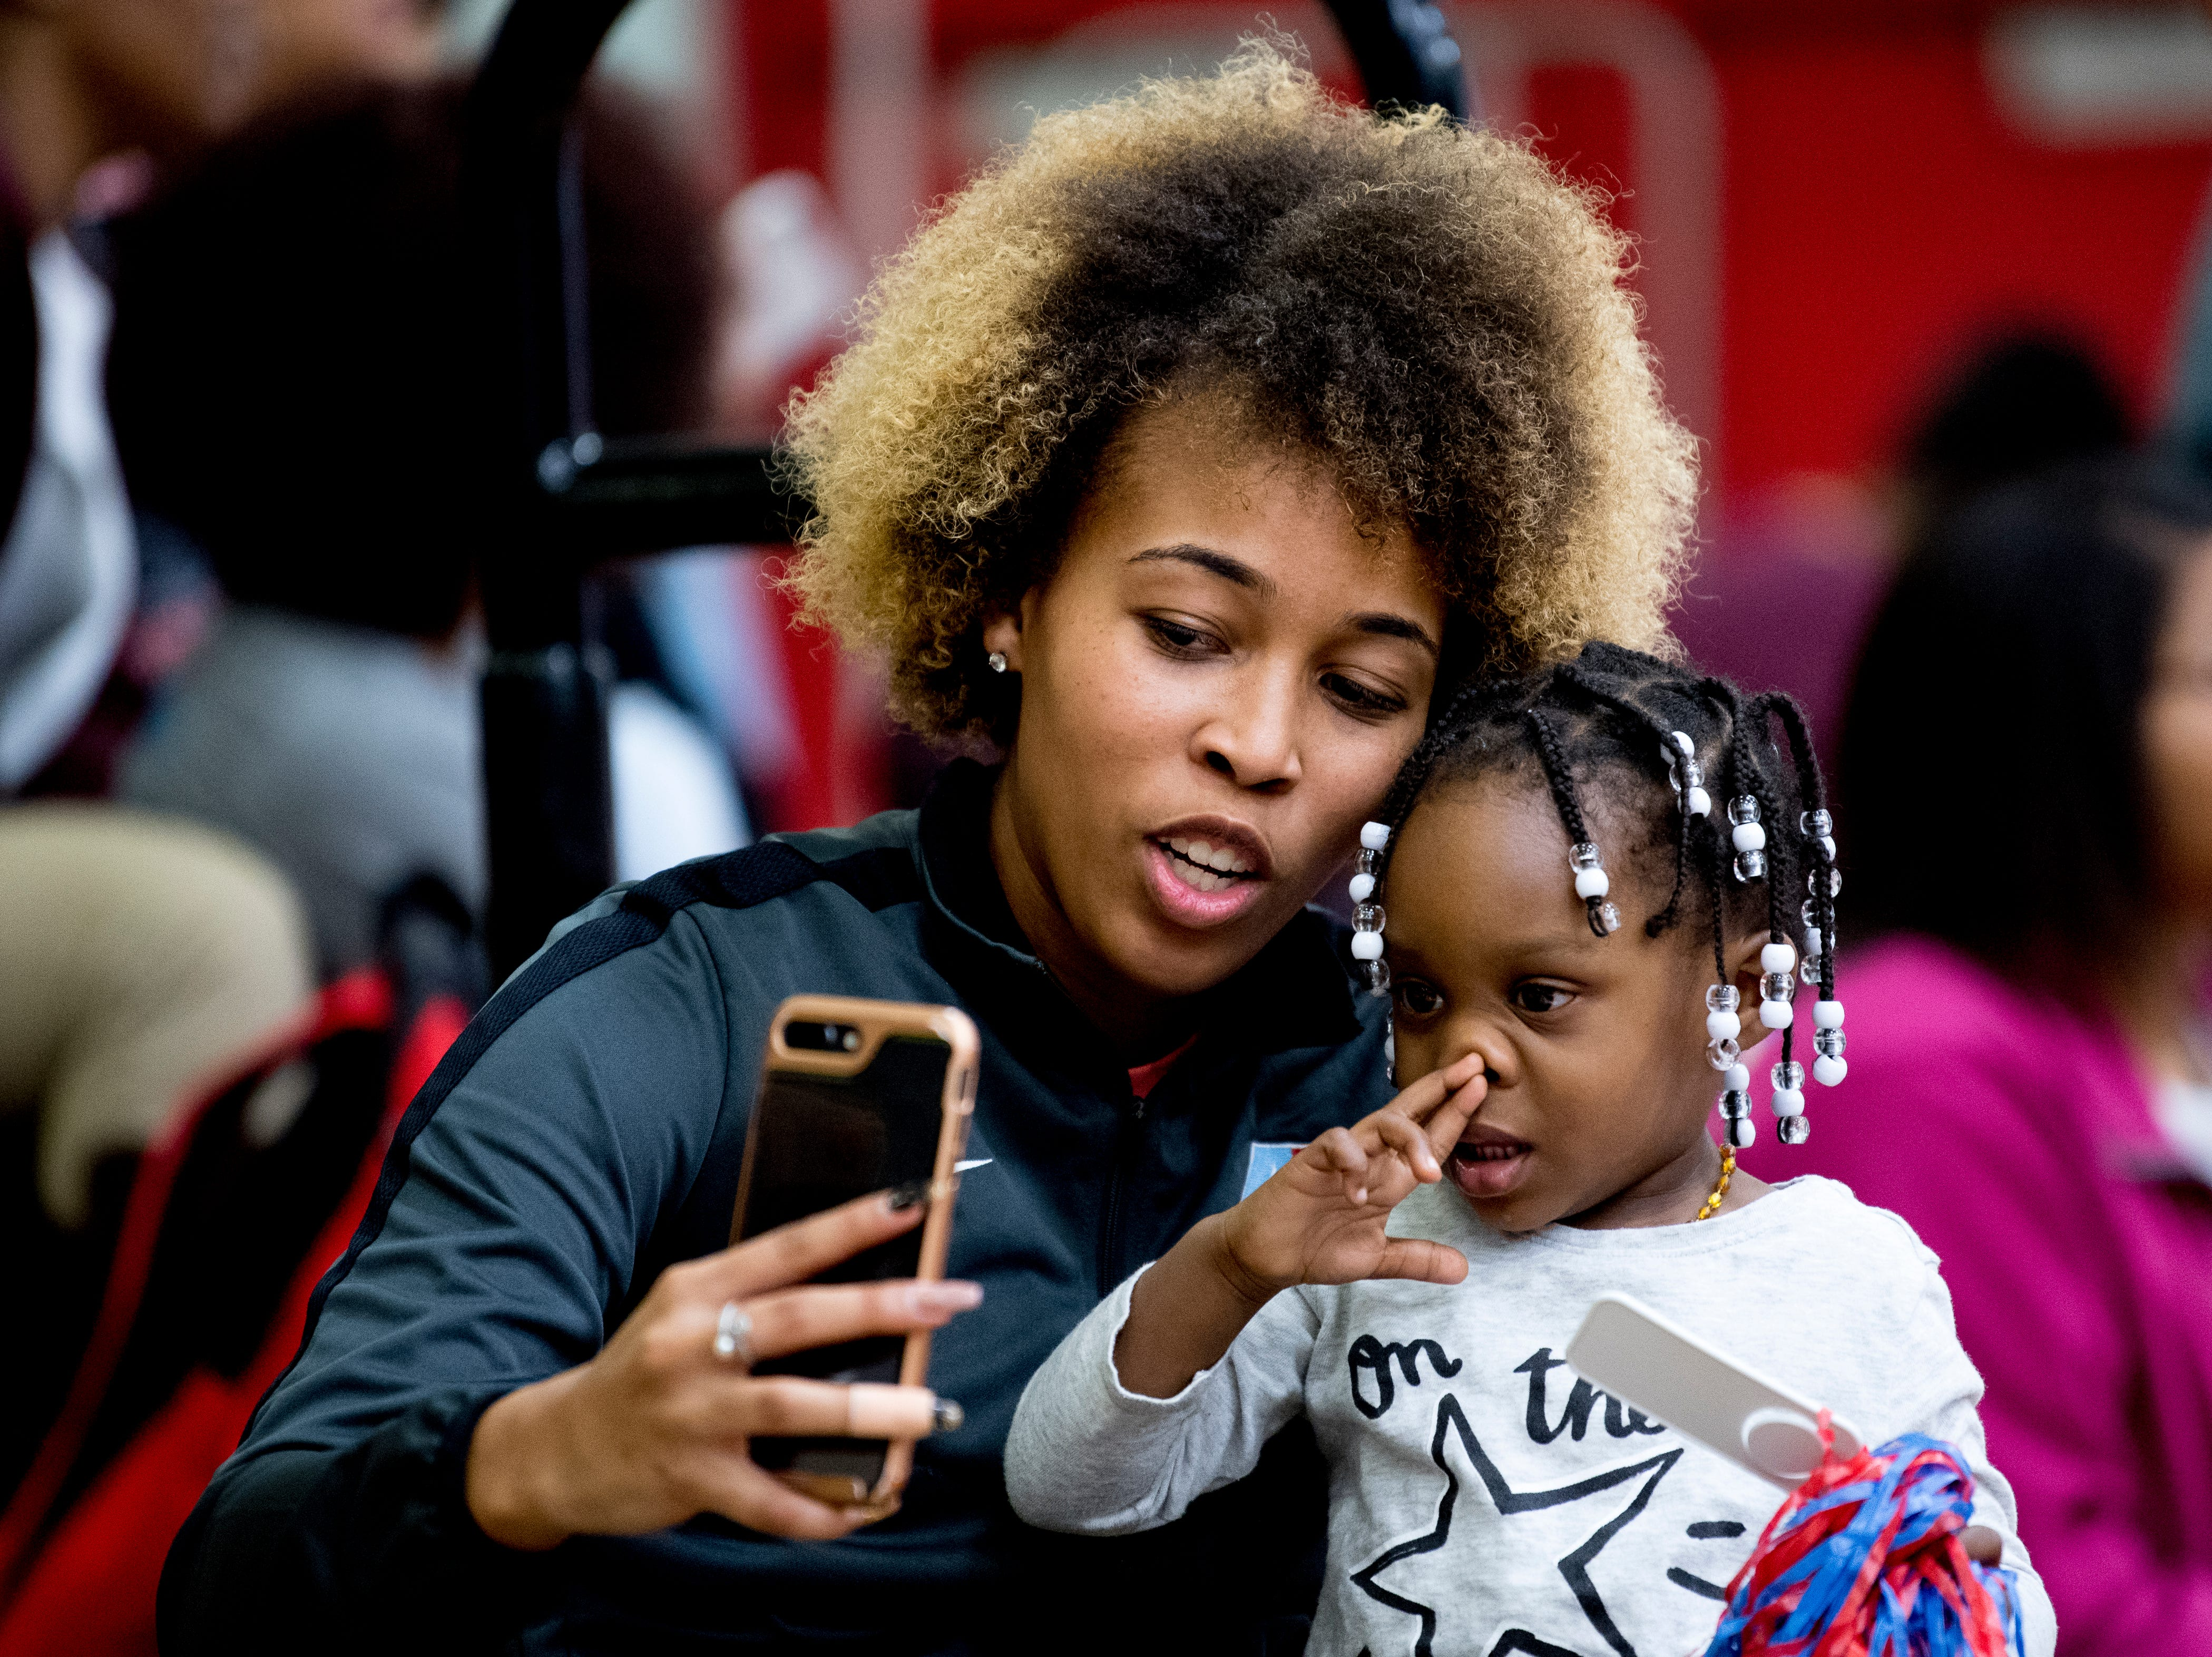 Jalan Harper takes a selfie with Jordynn Crenshaw, 2, in the stands during a game between Austin-East and Alcoa at Austin-East High School in Knoxville, Tennessee on Friday, January 18, 2019.